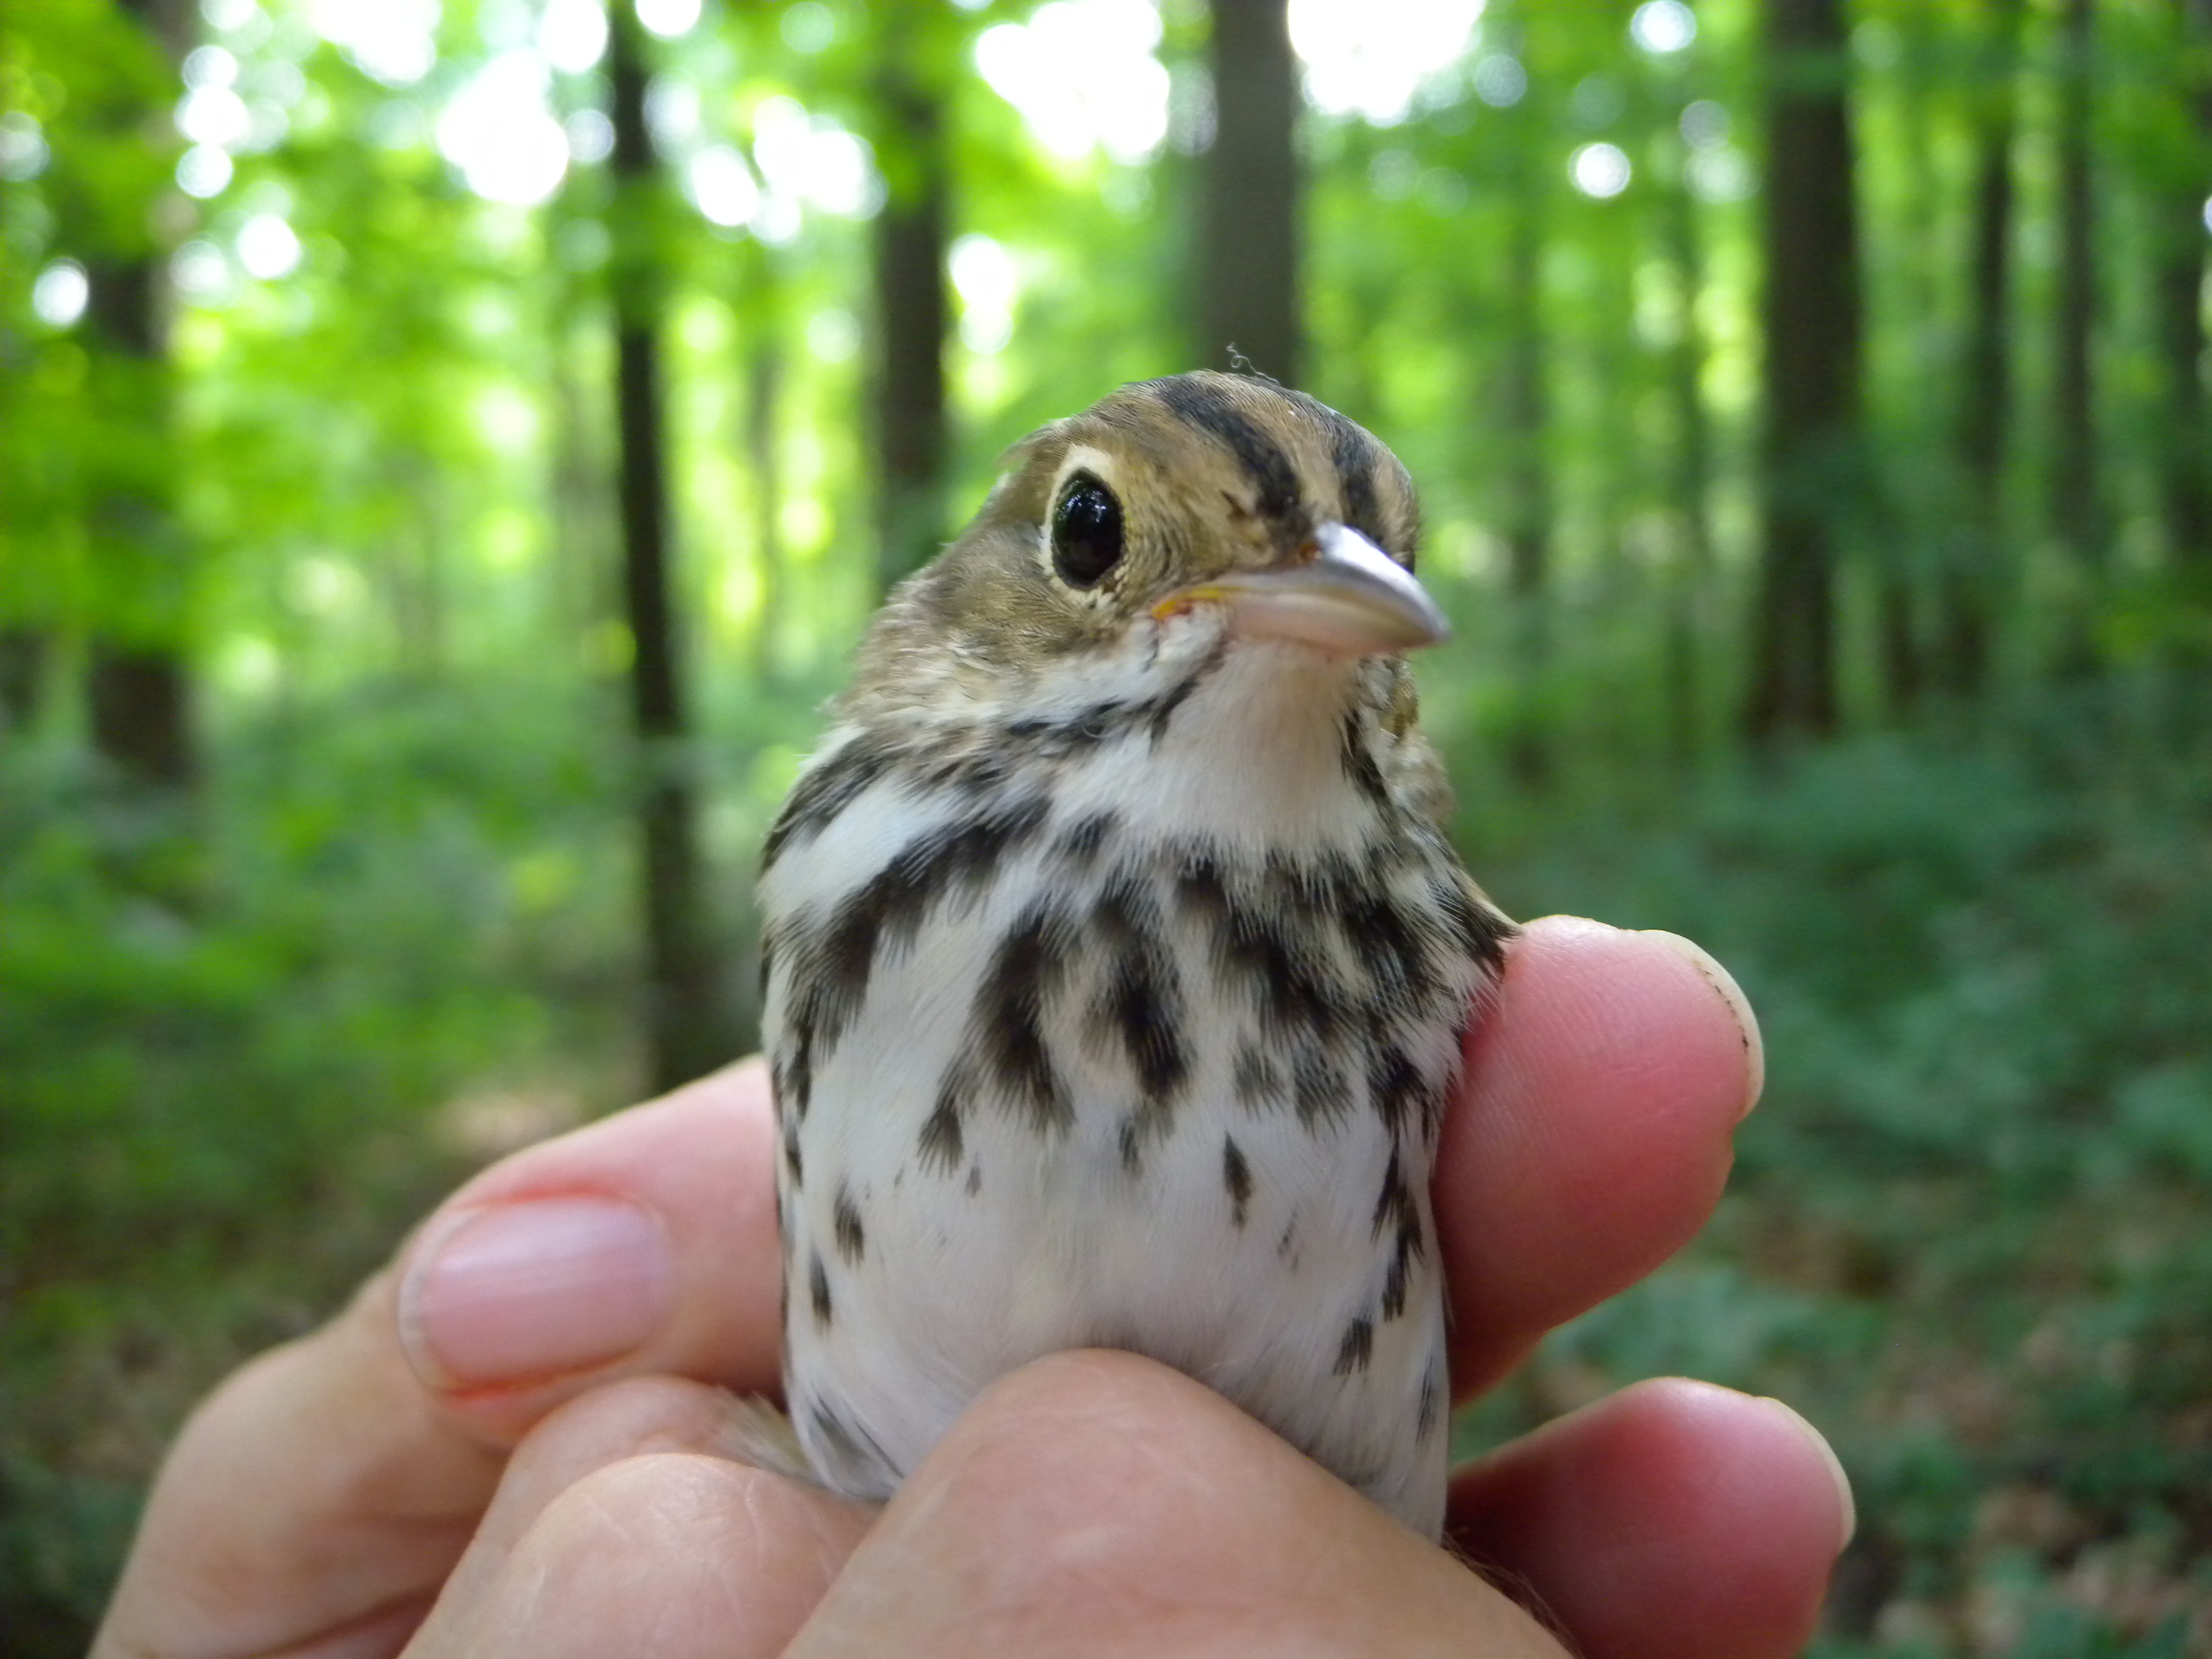 Juvenile Ovenbird in Rushton Woods. Photo by Blake Goll.